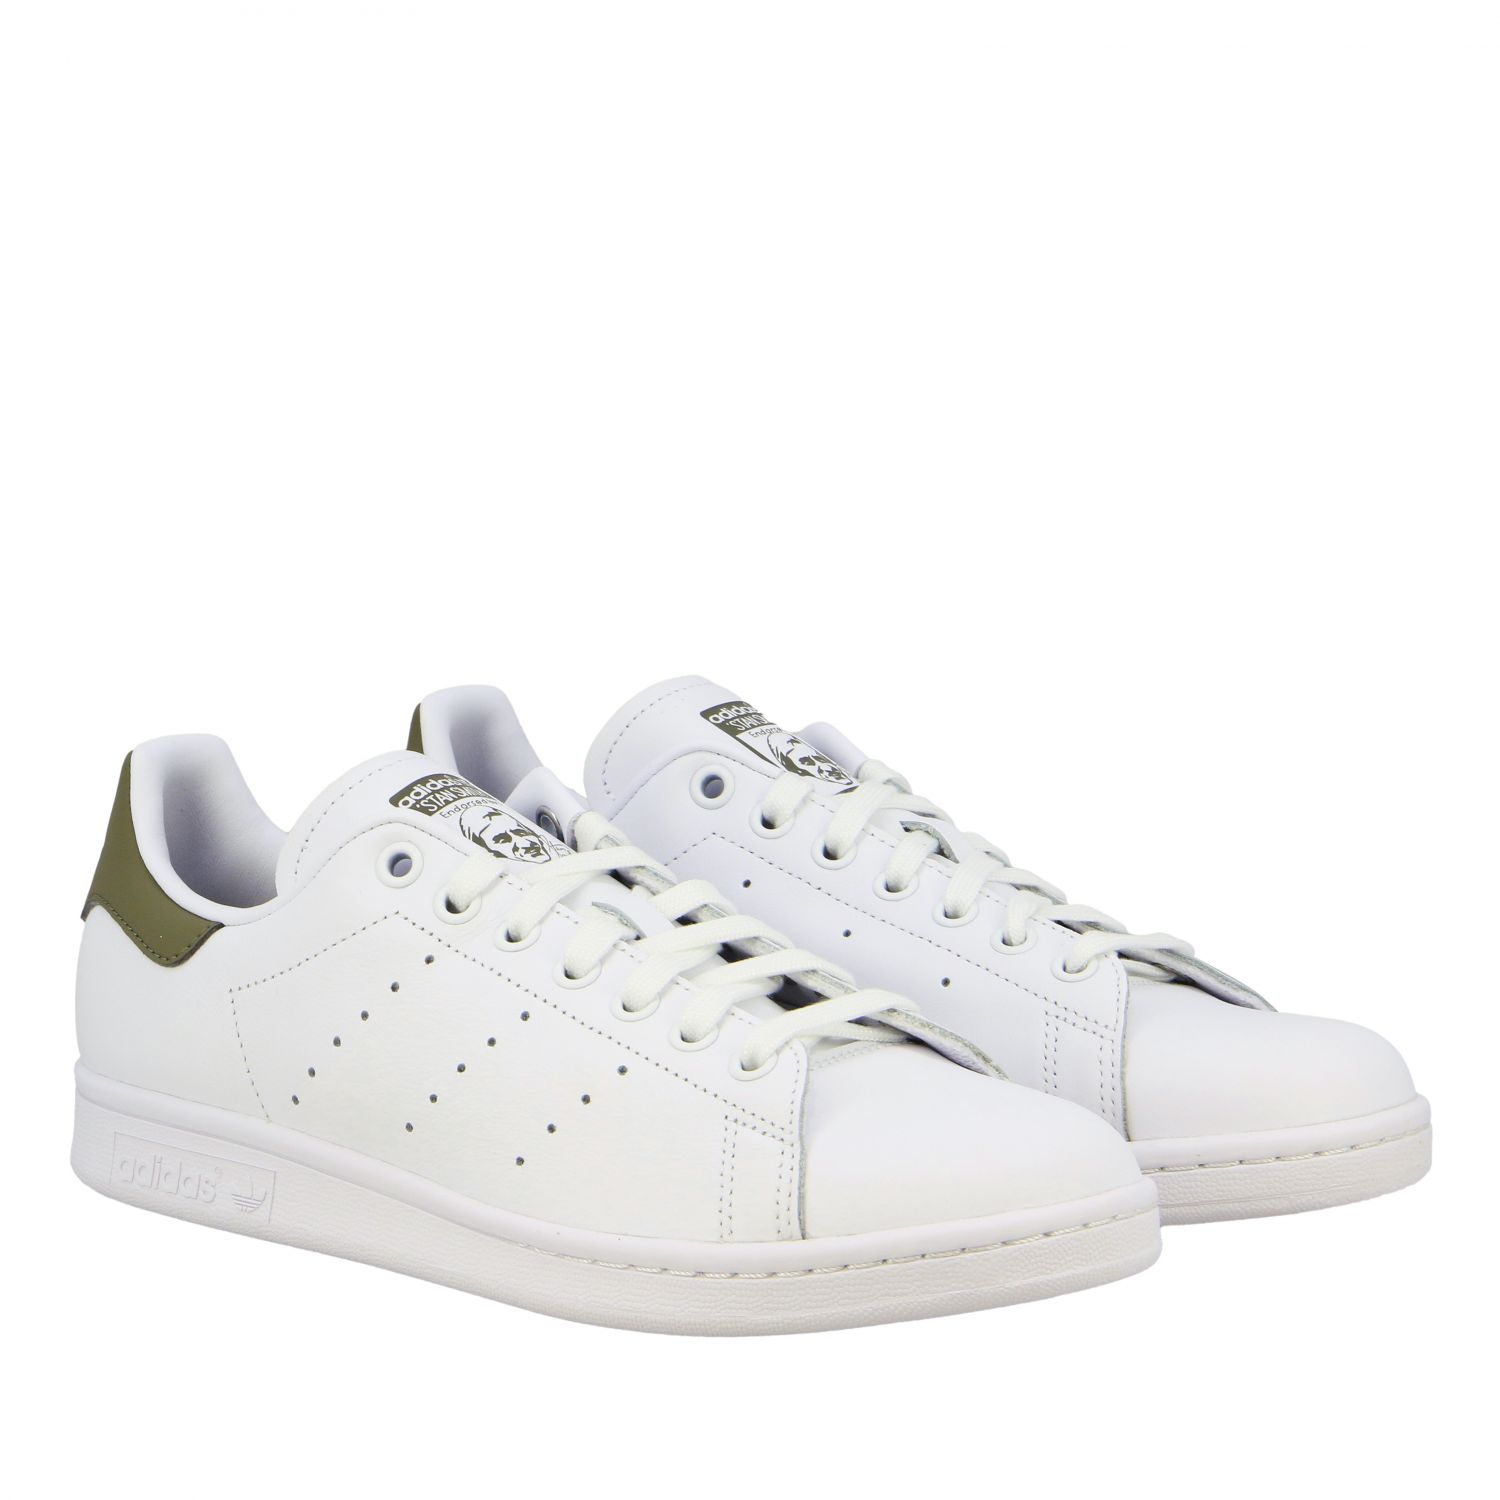 Baskets en cuir Adidas Originals Stan Smith blanc 2